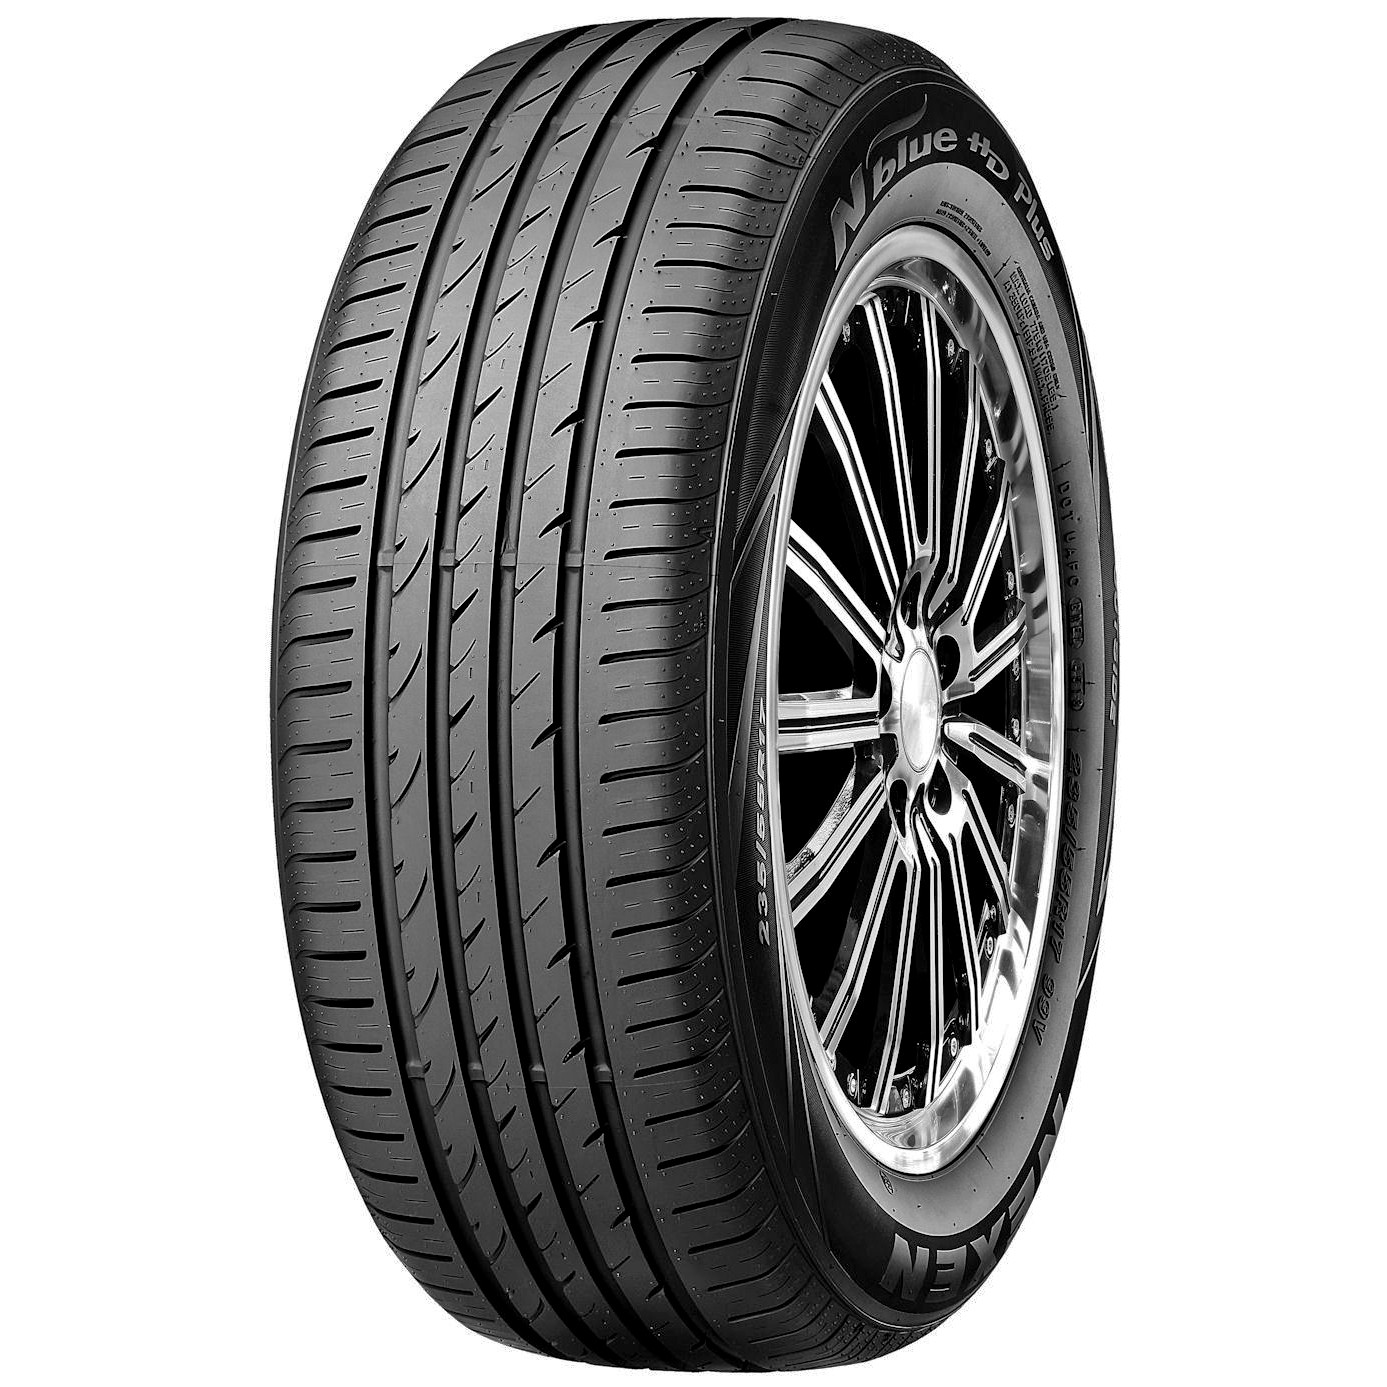 NEXEN 155/70R13 75T NBLUE HD PLUS